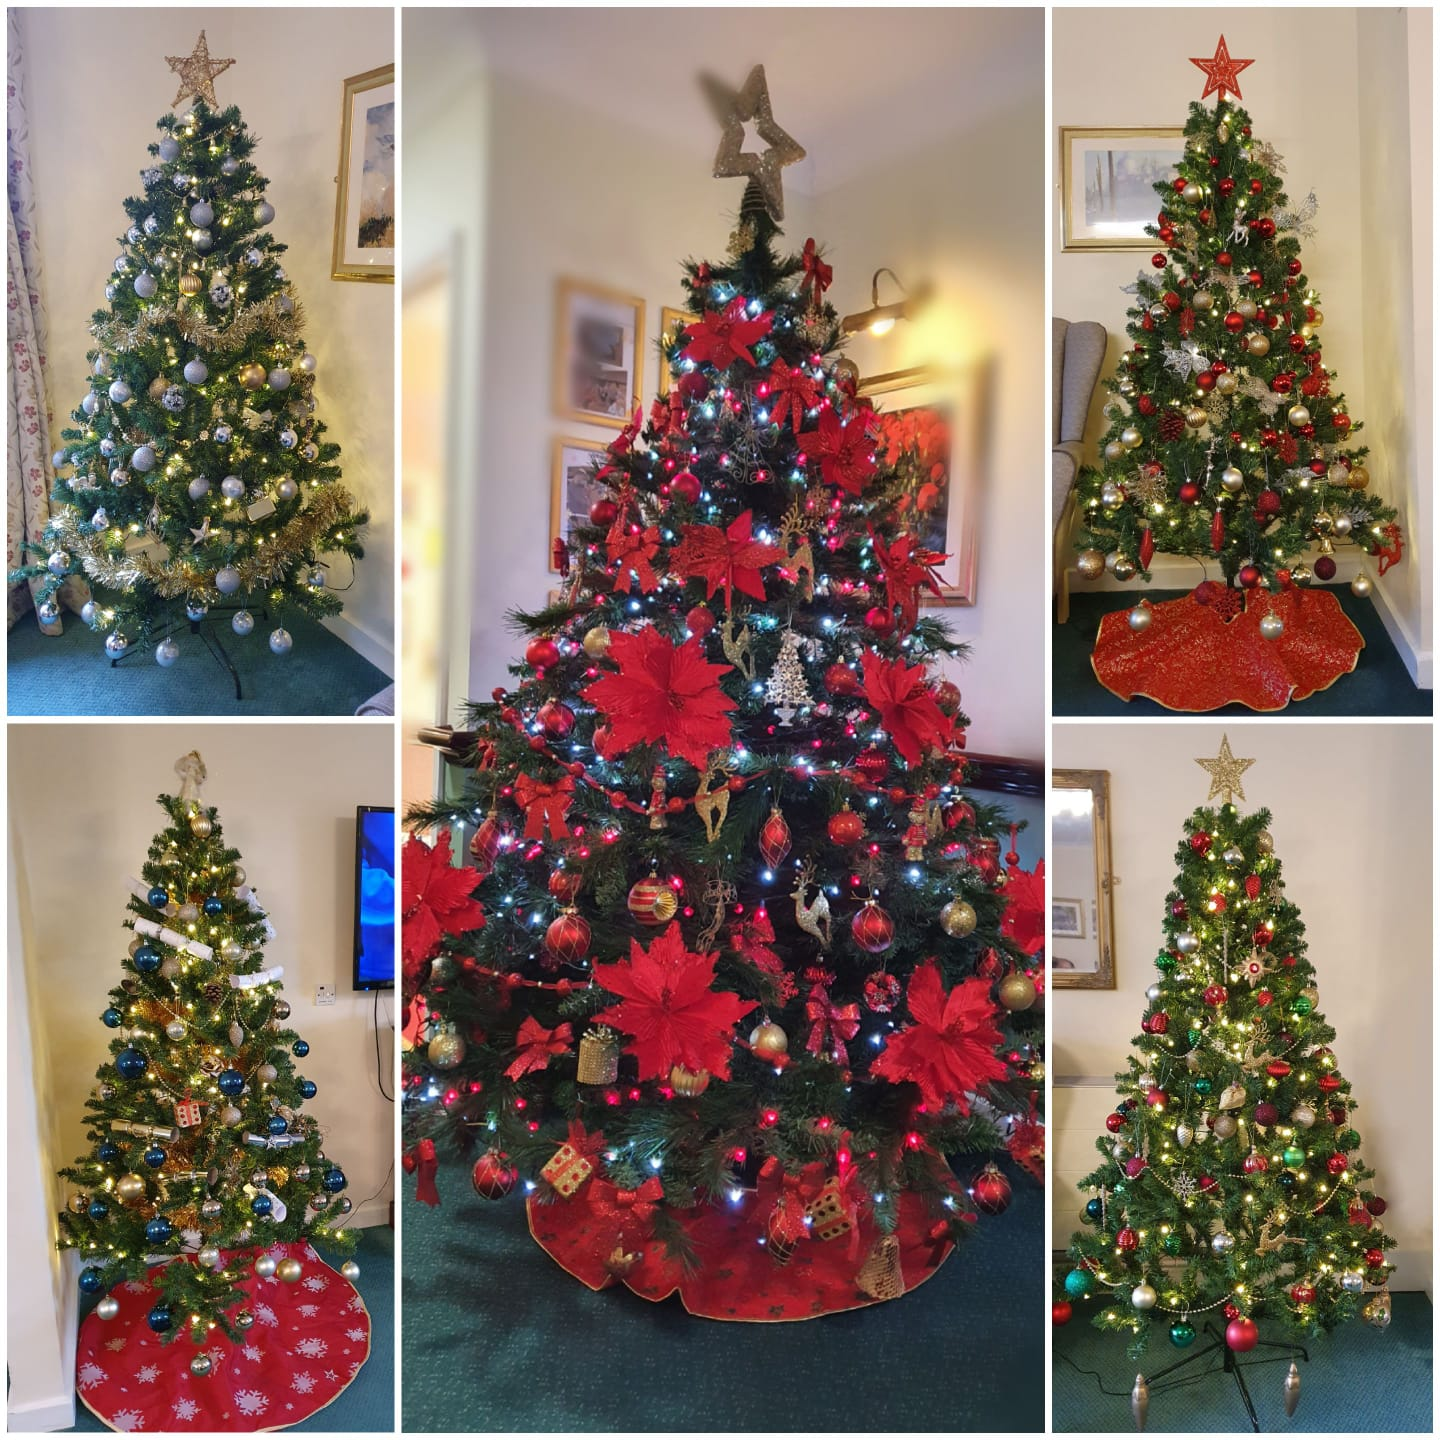 Christmas trees at Rochester Care Home in Kent